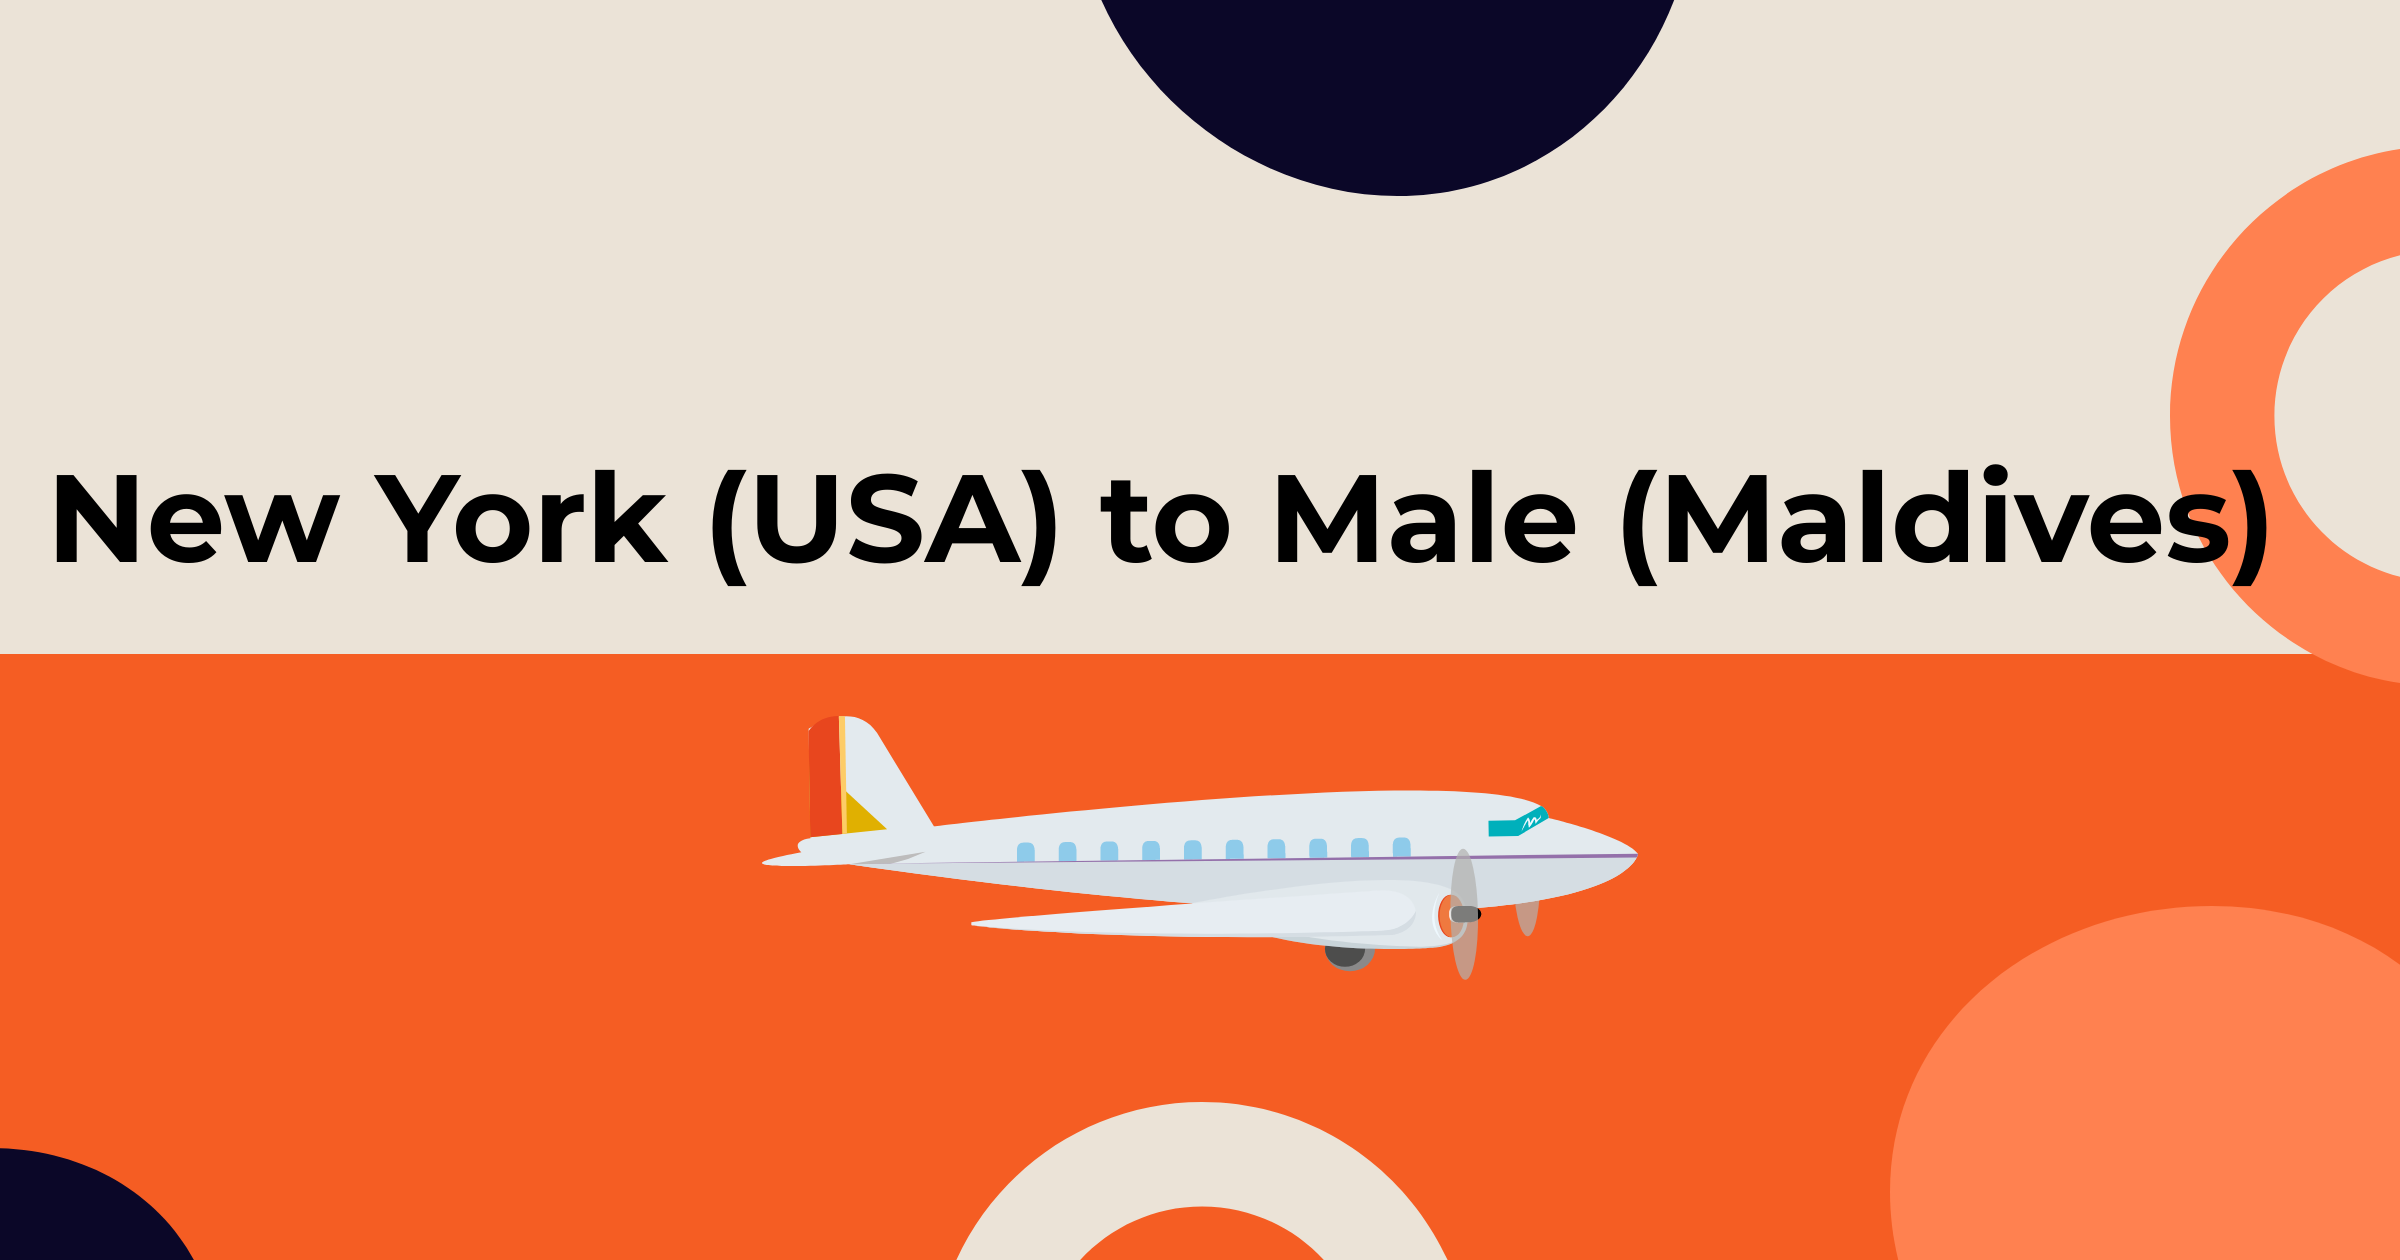 New York (USA) to Male (Maldives) B2B flight booking portal (Fare Compare)